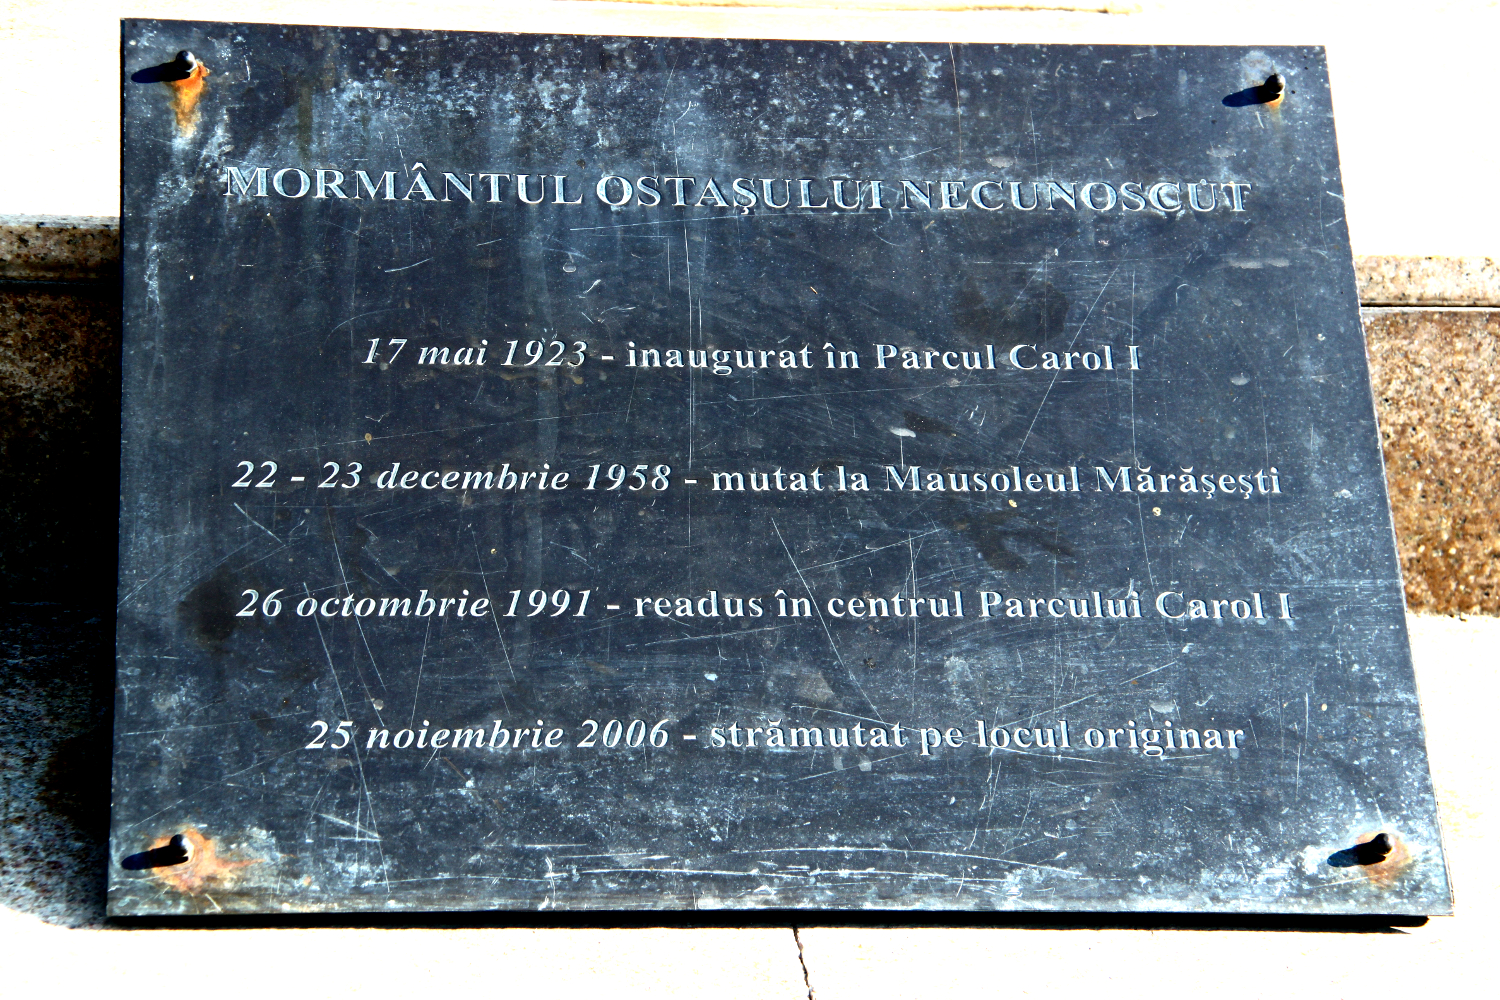 Tomb of the Unknown Soldier in Carol Park, Bucharest, Romania - explanation